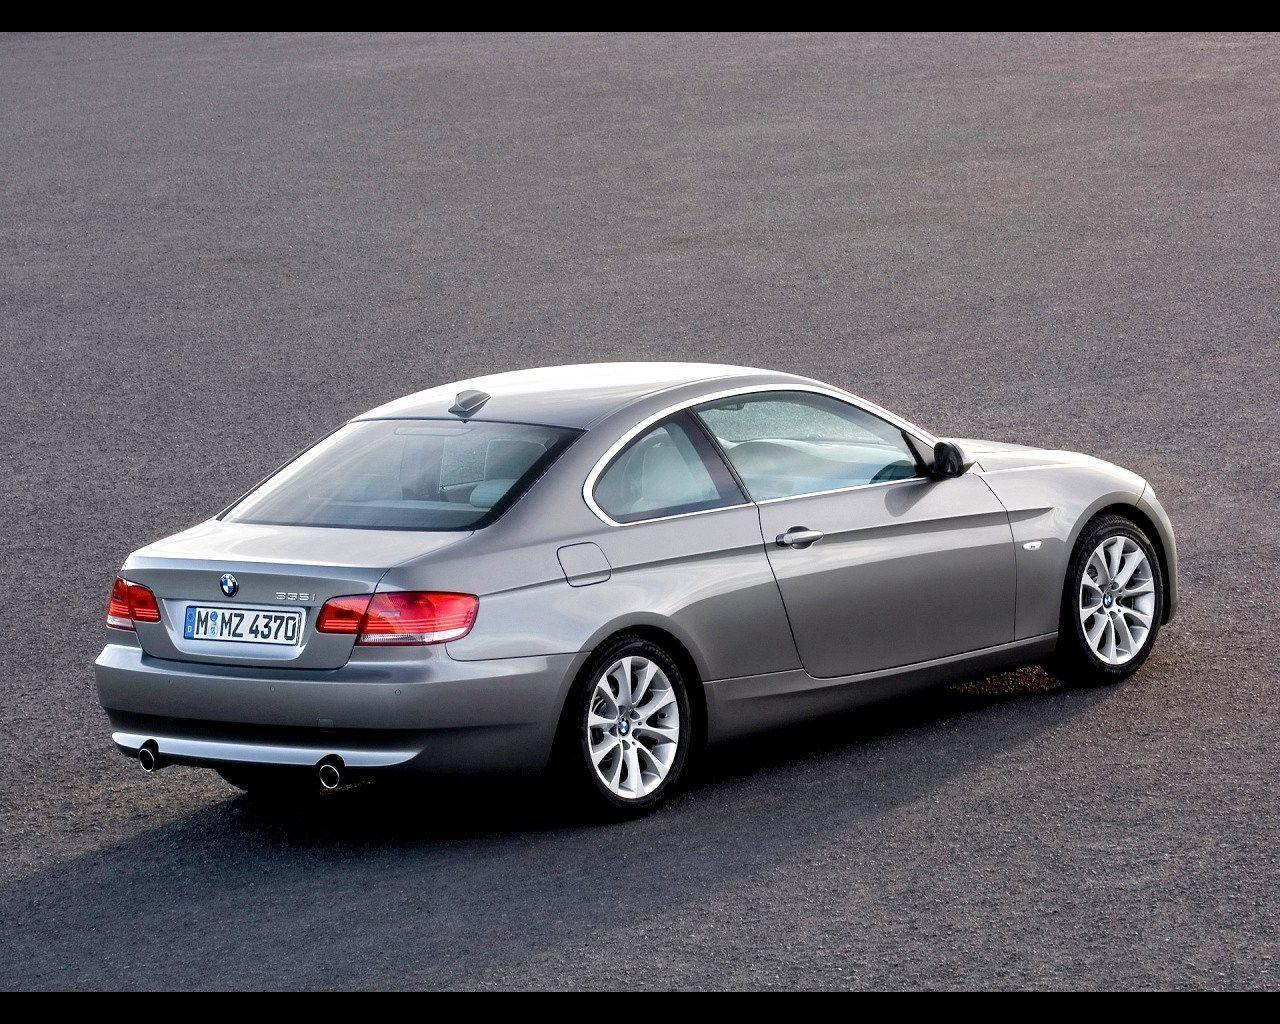 2007 BMW 335i Coupe Wallpaper 08 - 1280x1024